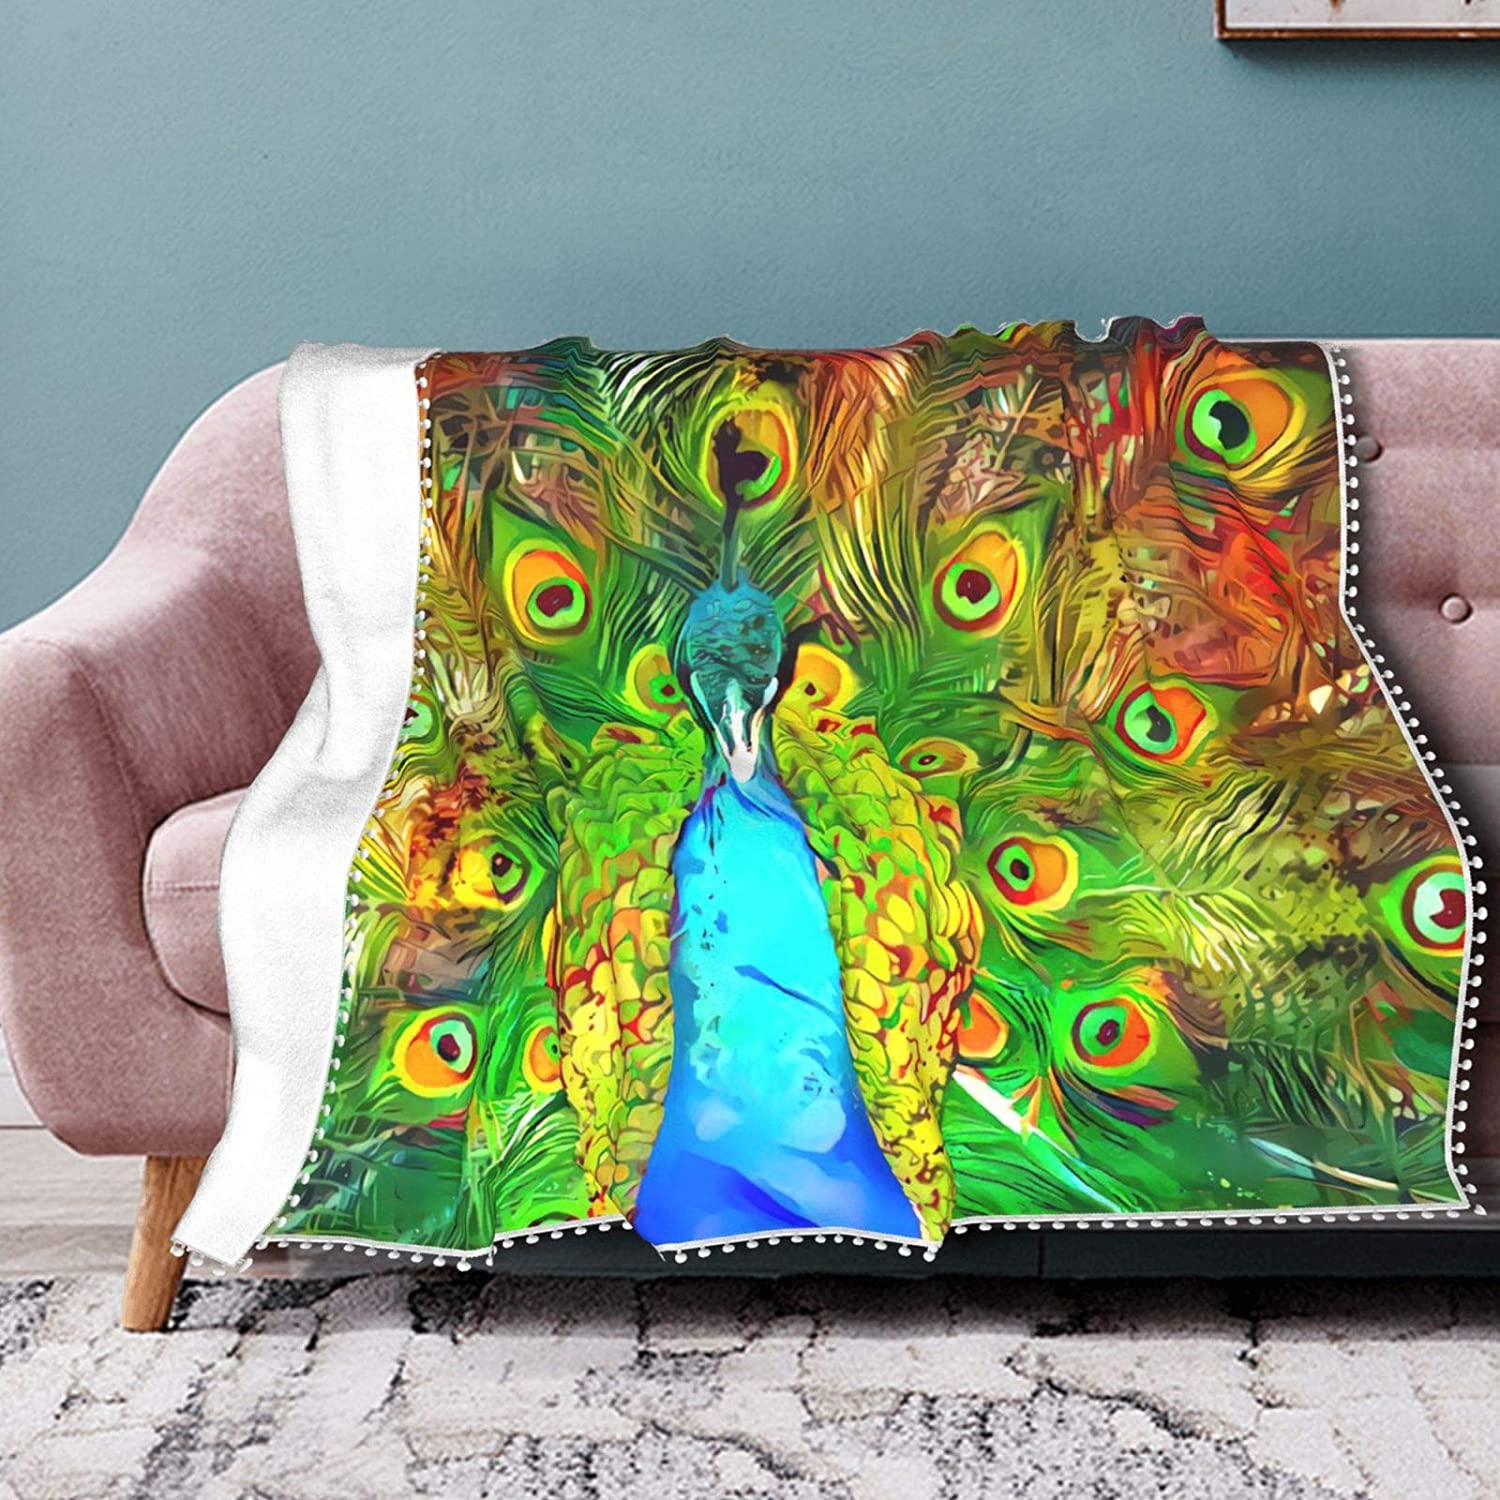 Animer and price revision Fractal Peacock Fleece Throw Blanket Fringe All-Sea Super Special SALE held with Pompom